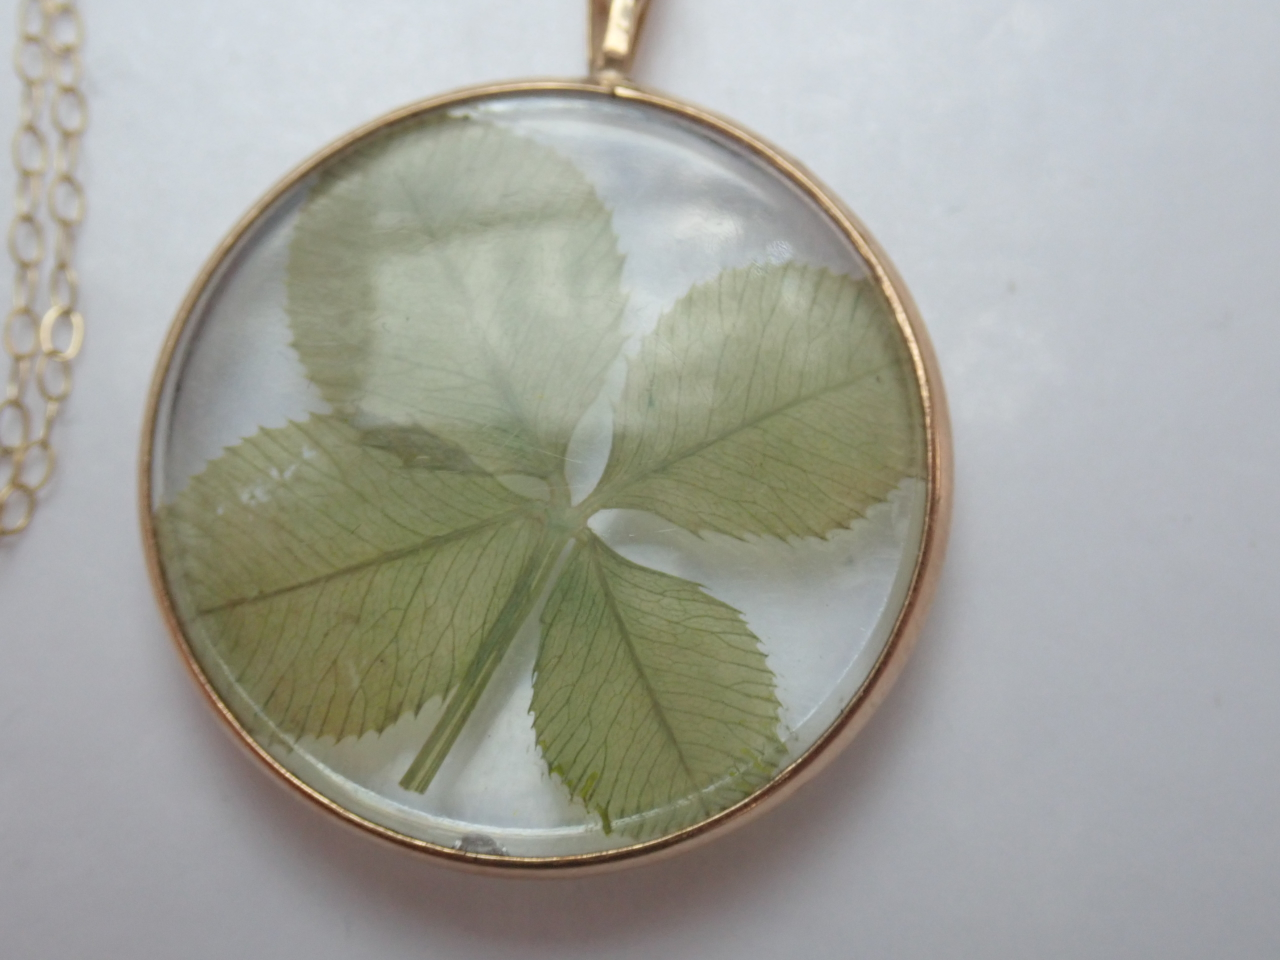 Lucky four leaf Clover Pendant 375 Gold 18 inch chain- 3.5 gms